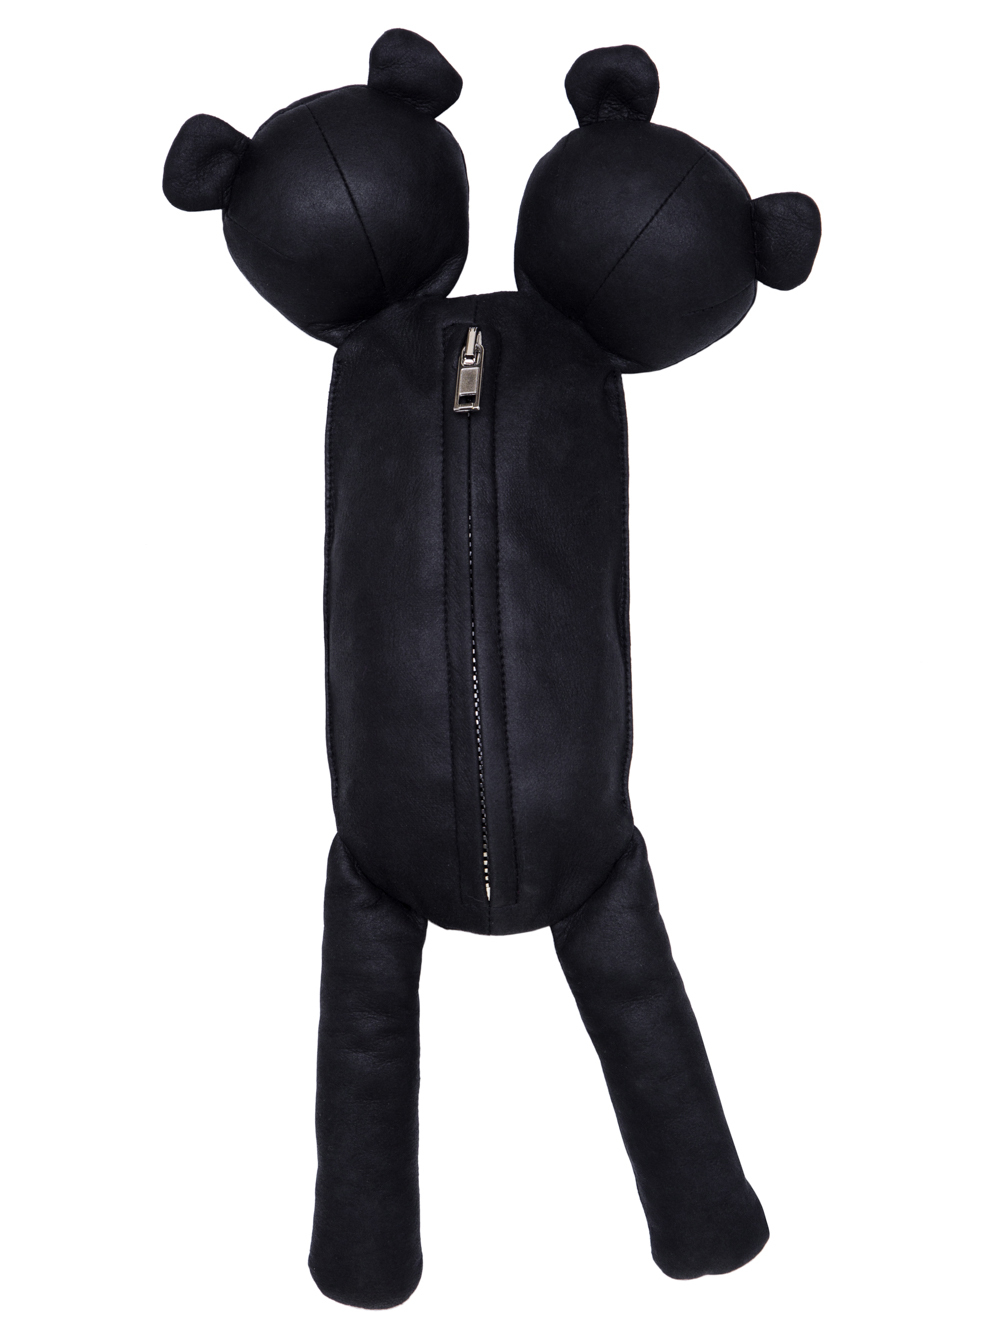 RICK OWENS HUN SIAMESE BEAR IN BLACK